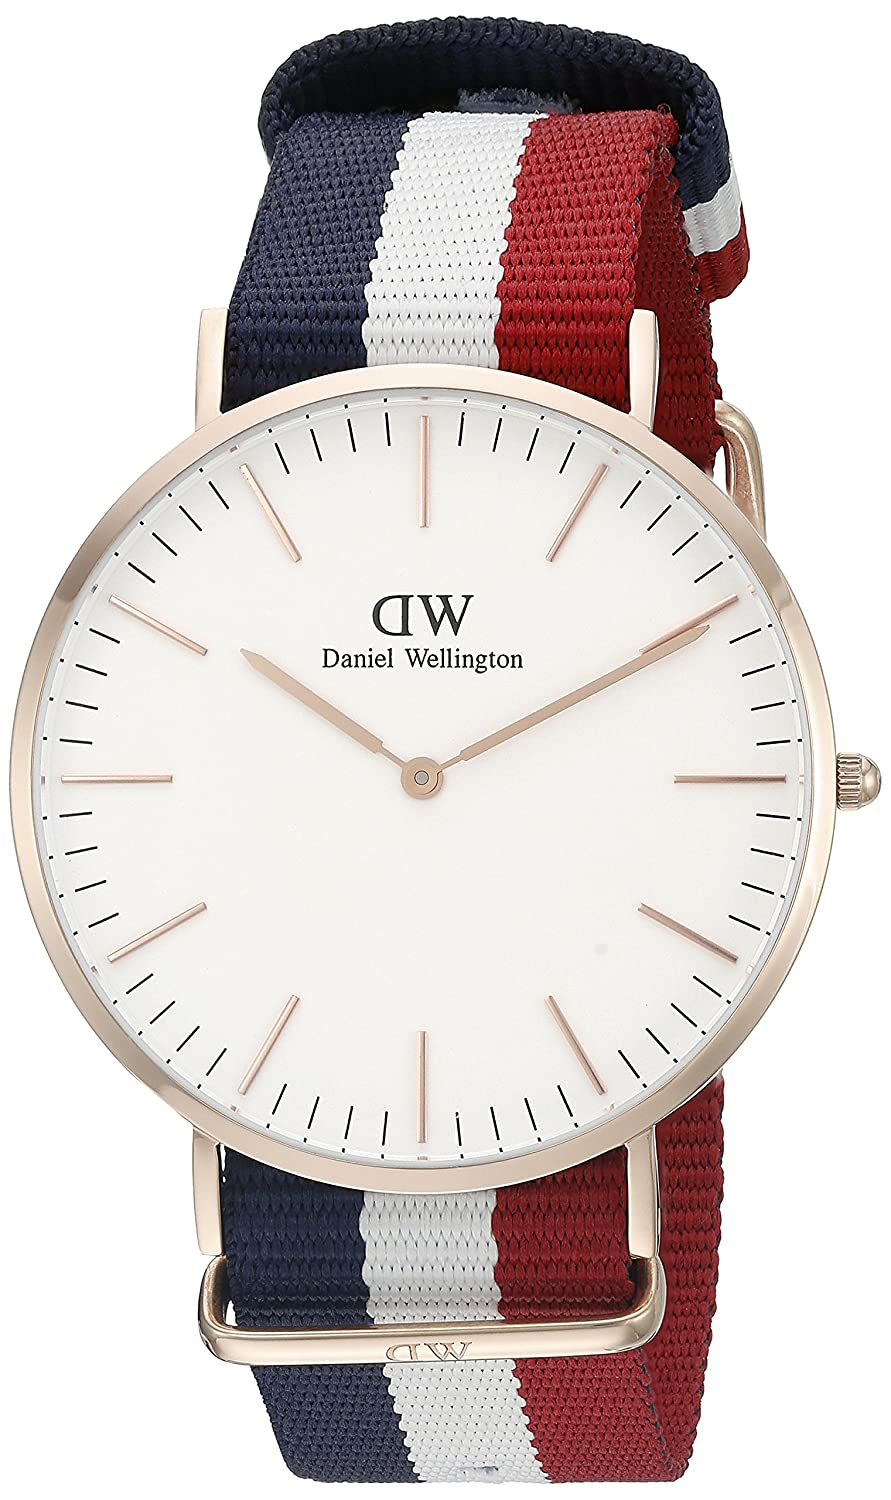 daniel wellington men s quartz watch classic cambridge 0103dw daniel wellington men s quartz watch classic cambridge 0103dw nylon strap daniel wellington amazon co uk watches